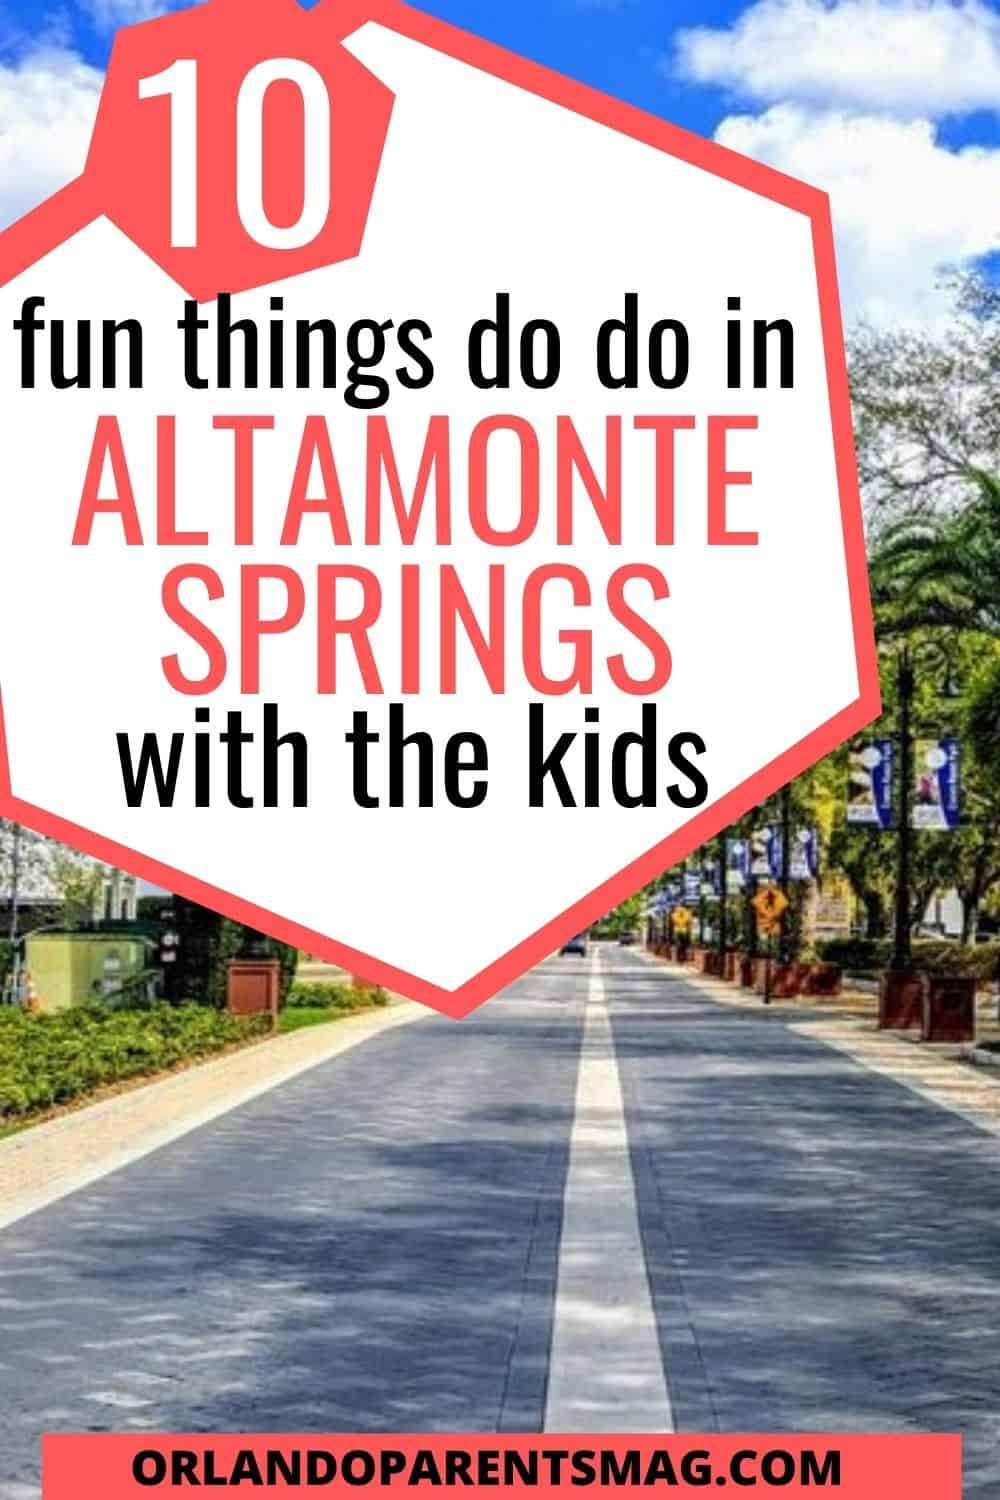 altamonte springs with kids